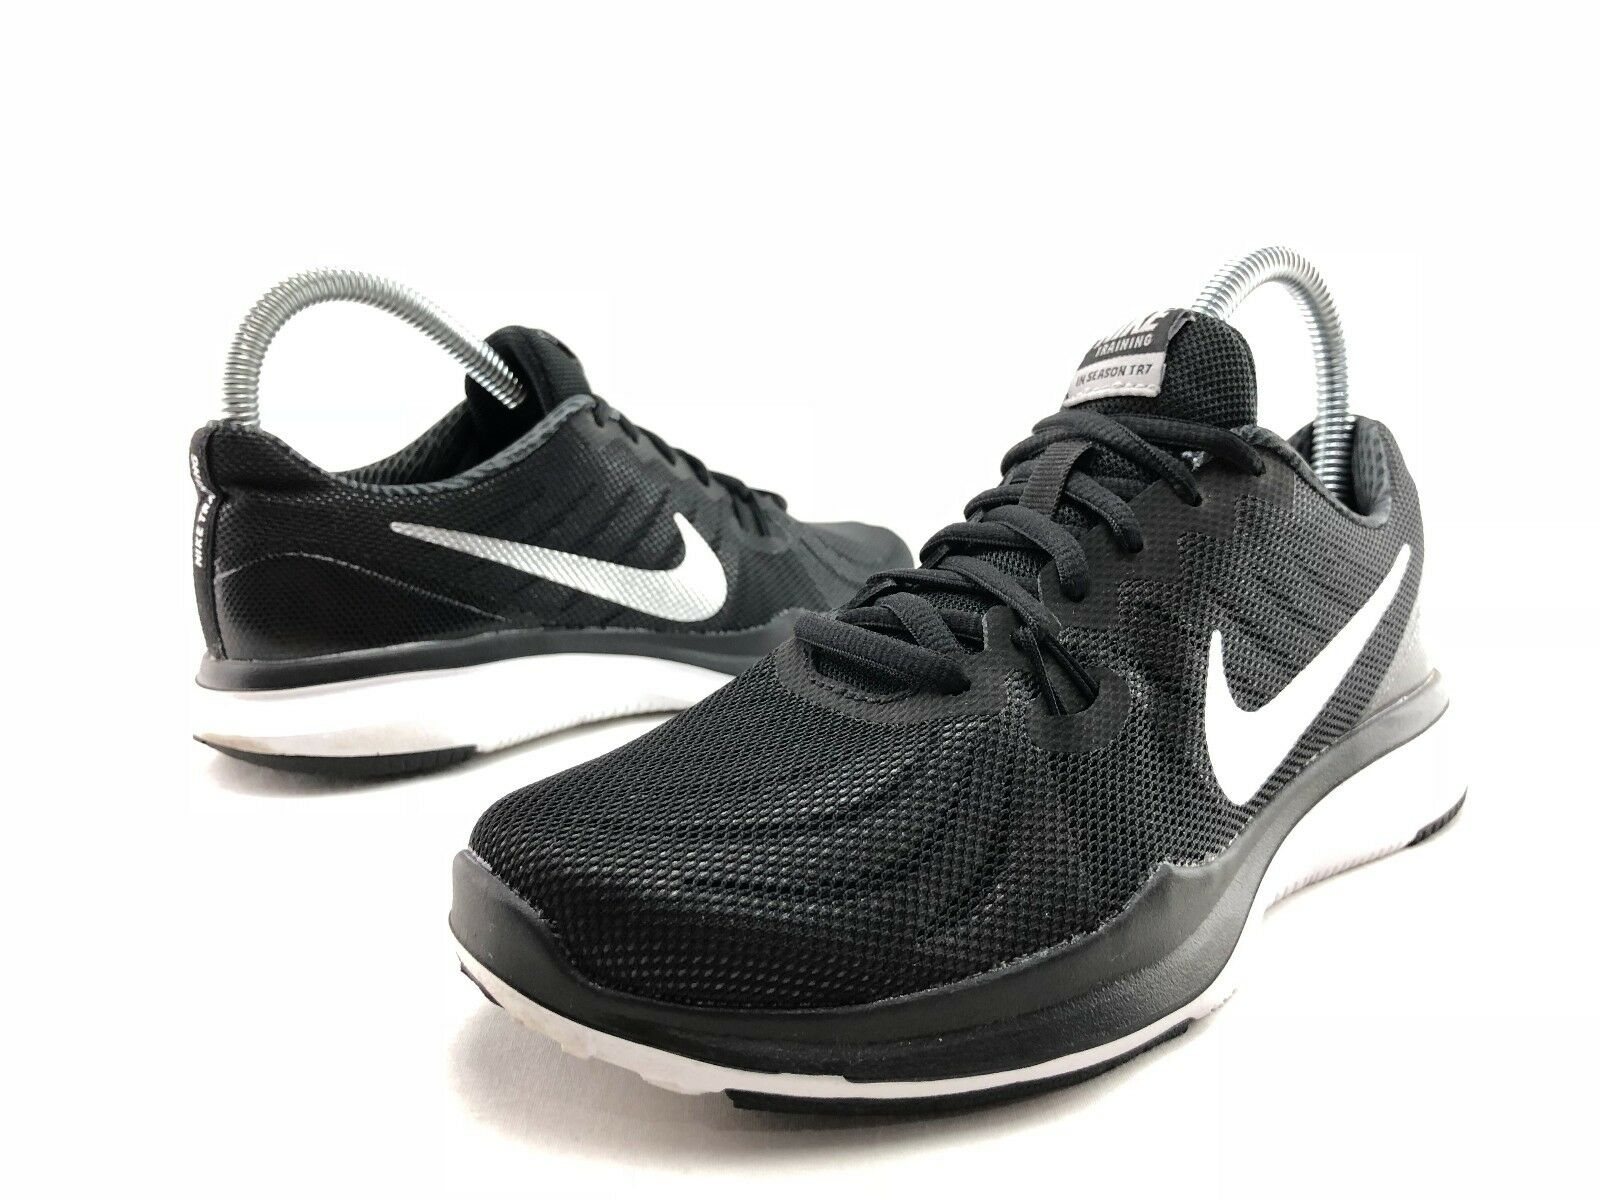 Nike In Season TR 7 Women's Black Silver Athletic Run Training Shoes US 7 C225